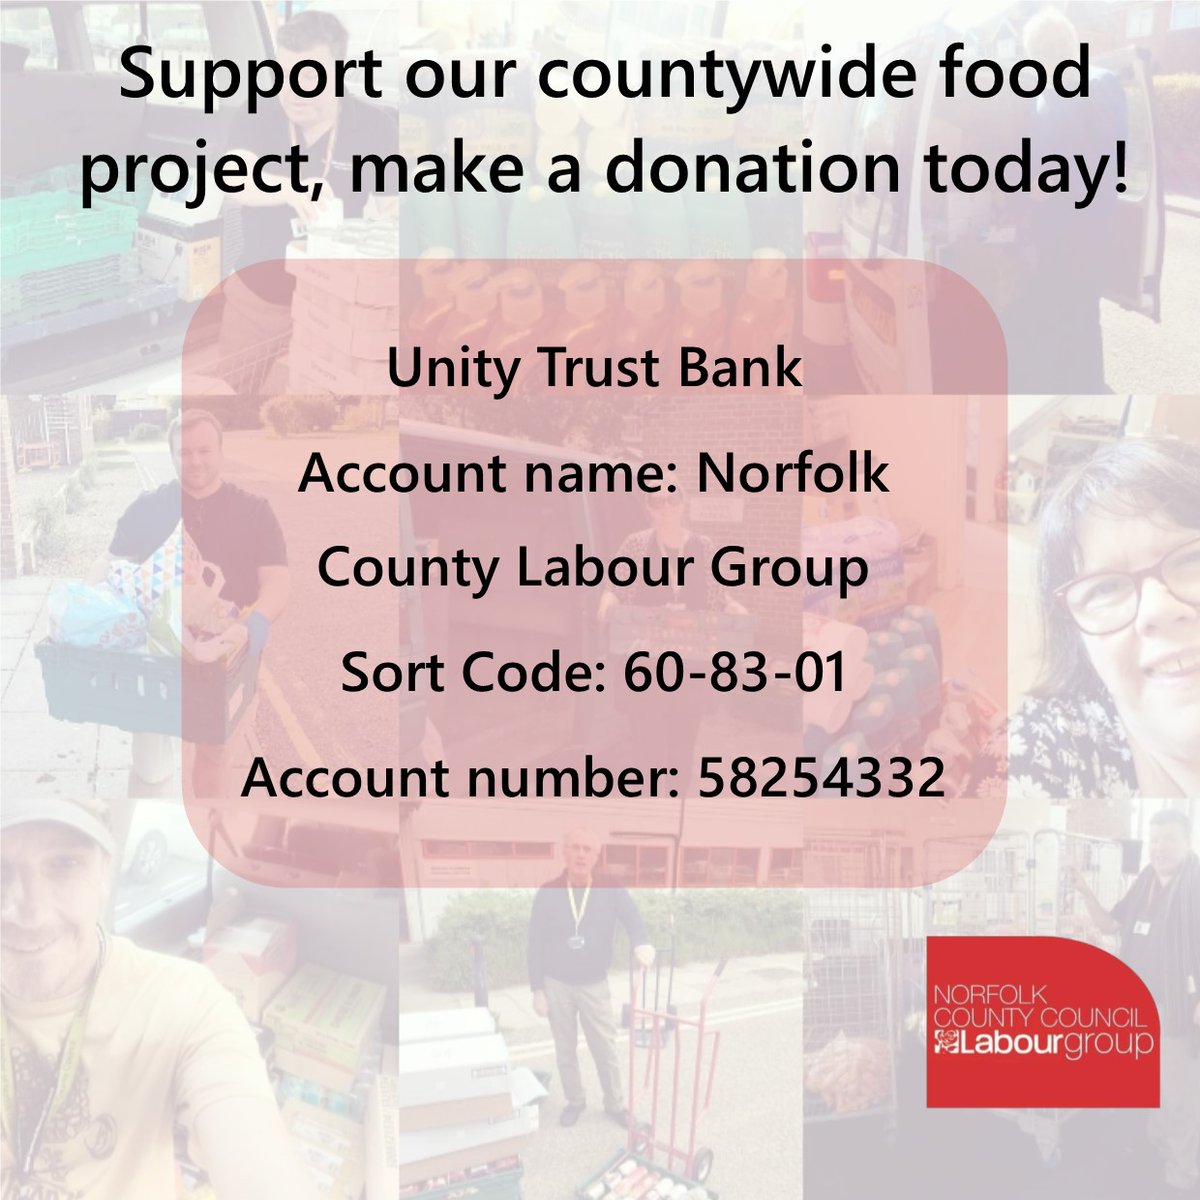 You can donate to support #foodoutfriday getting over a tonne of food a week across norfolk wherever it is needed twitter.com/NorfolkLabourC…